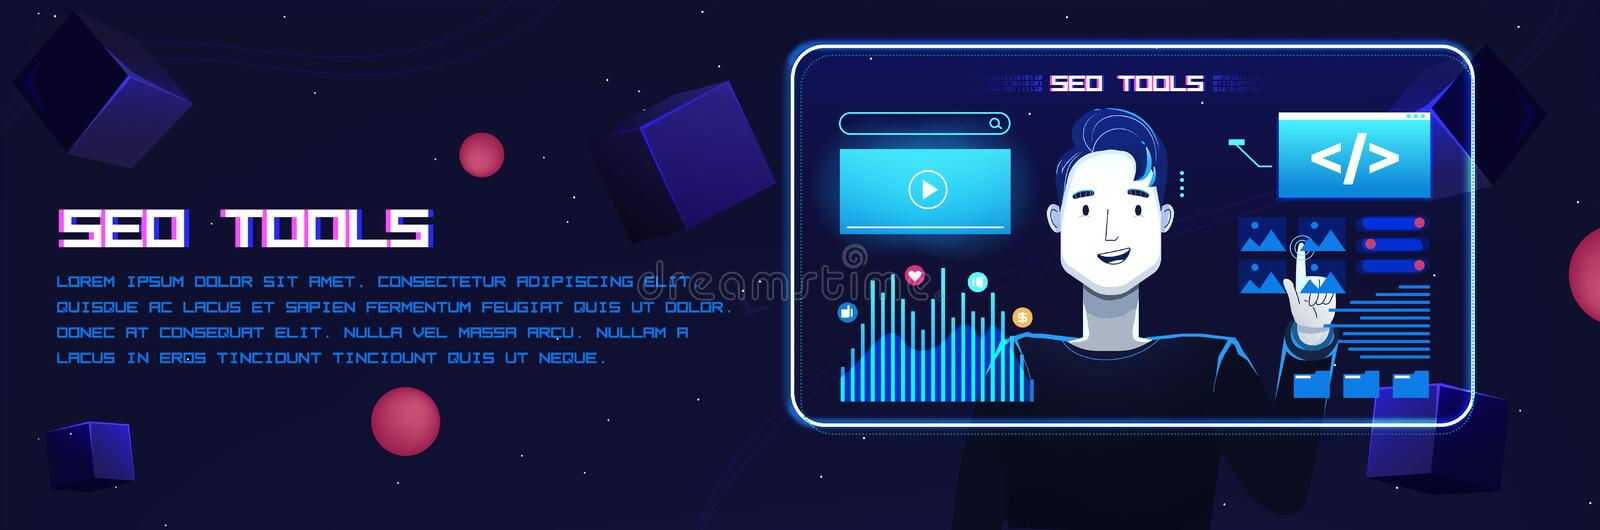 Seo digital tools. A man manages files on a futuristic neon screen. Vector flat illustration with texture royalty free illustration